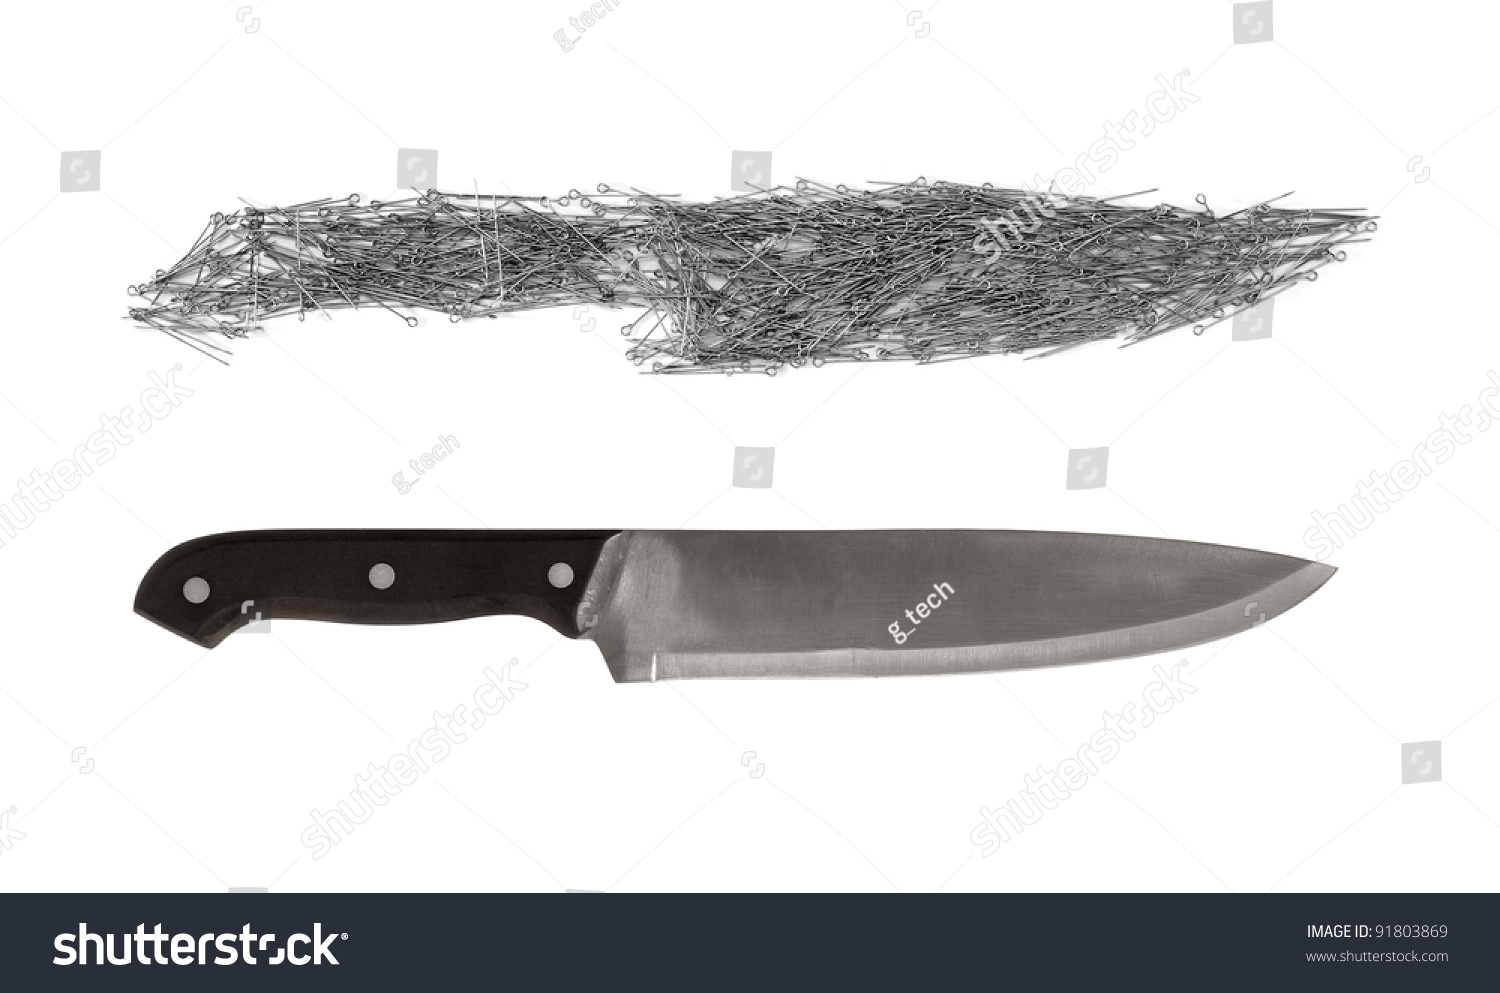 Two Knives Real Kitchen Knife Knife Stock Photo (Royalty Free ...